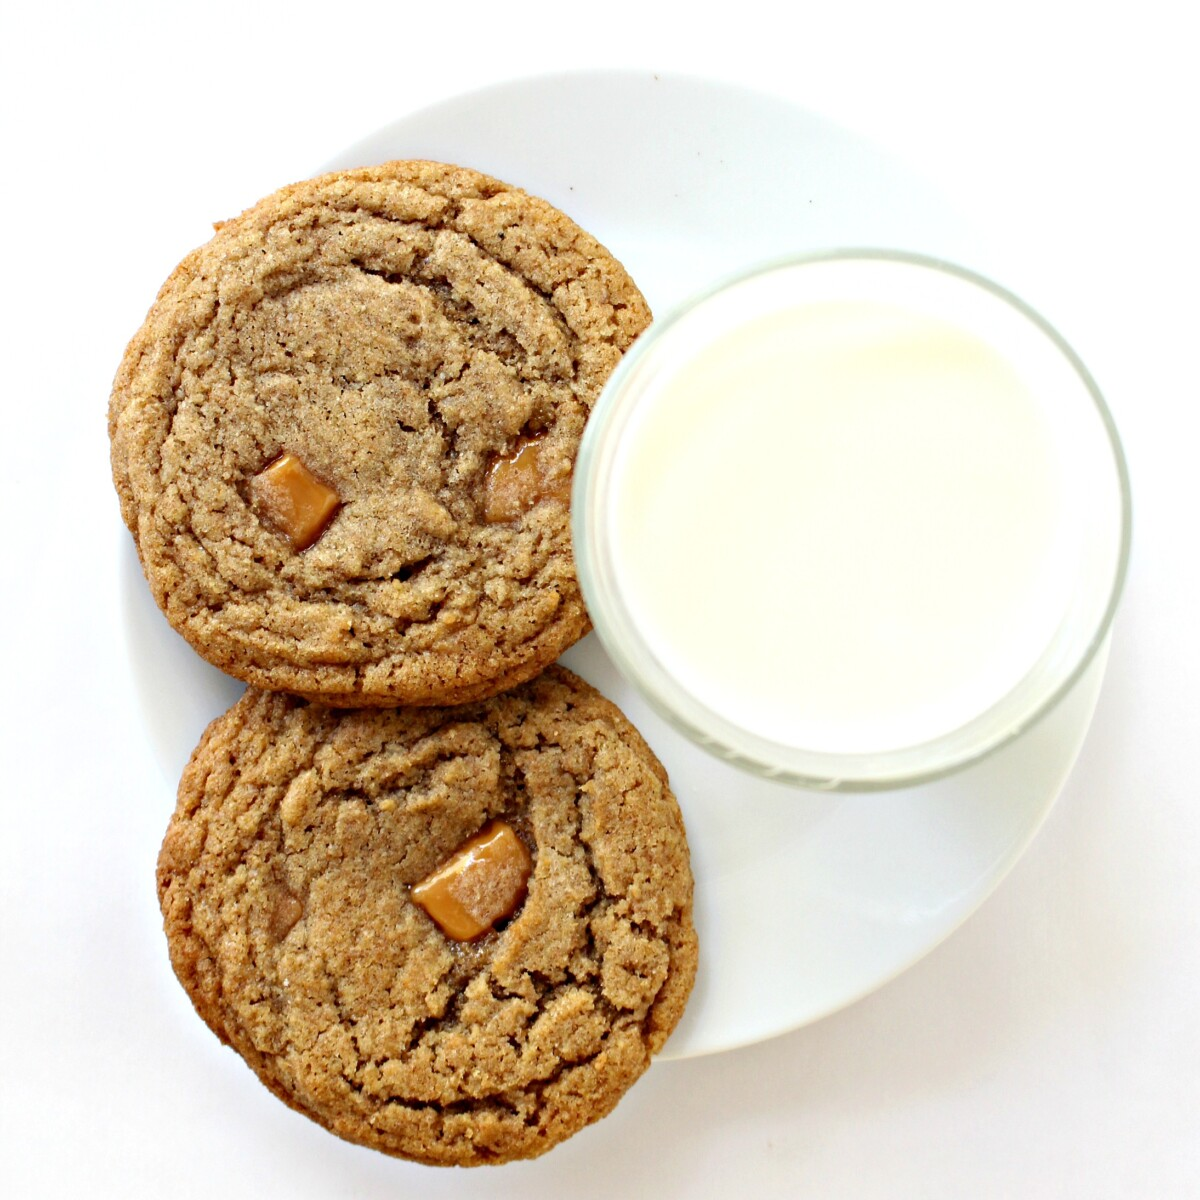 Overhead photo of two golden brown, crinkled cookies on a plate with a glass of milk.